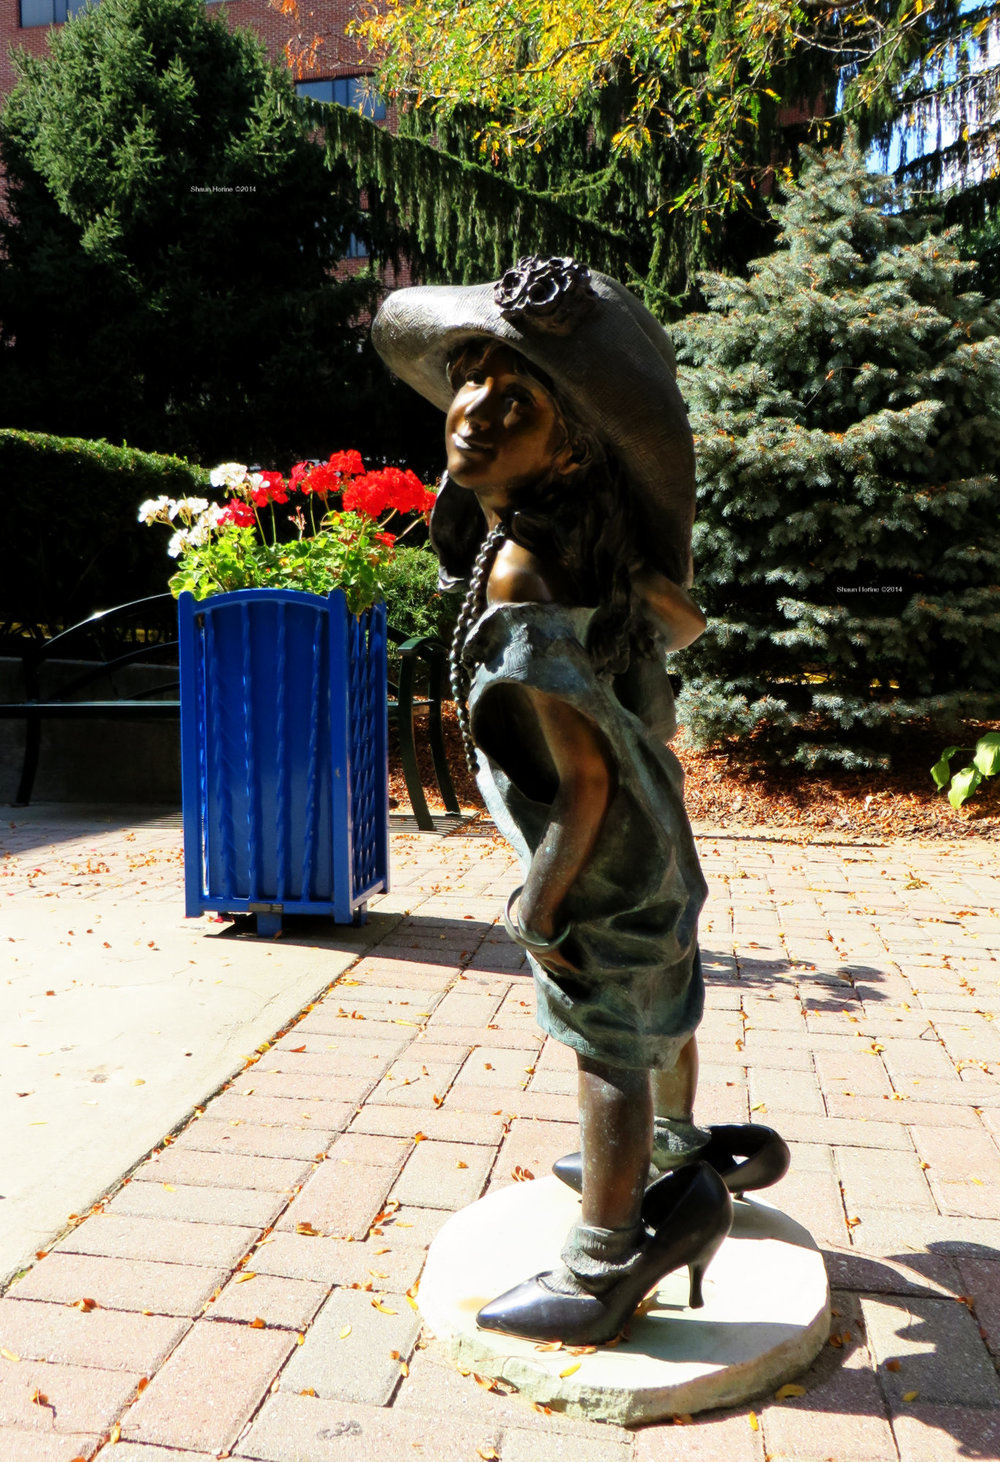 Front view of small girl statue. Baptist Health Lexington, KY. Canon SX280 HS